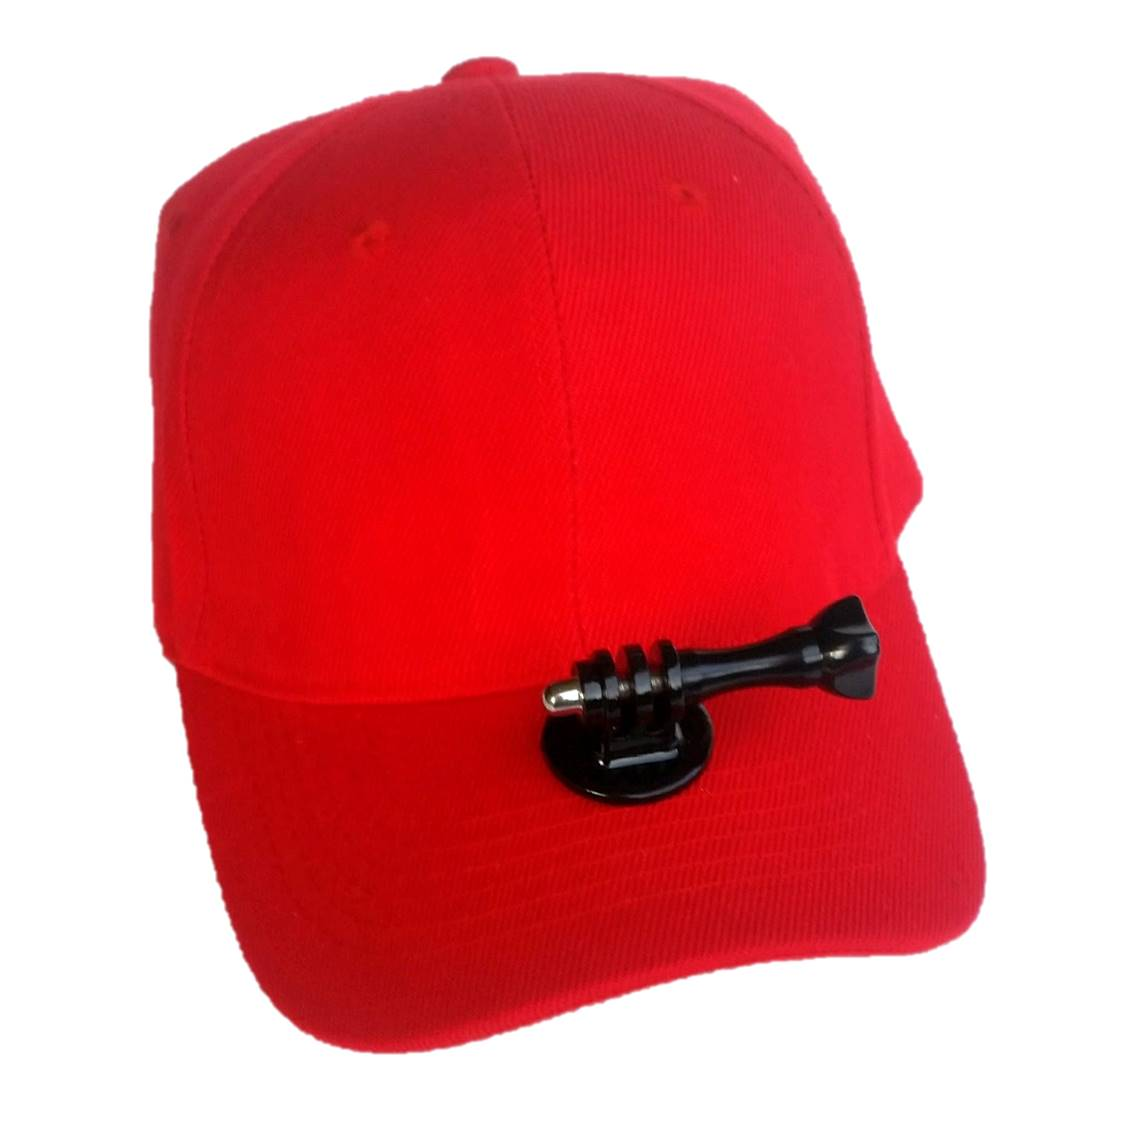 Red hiking hat with permanent action camera mount